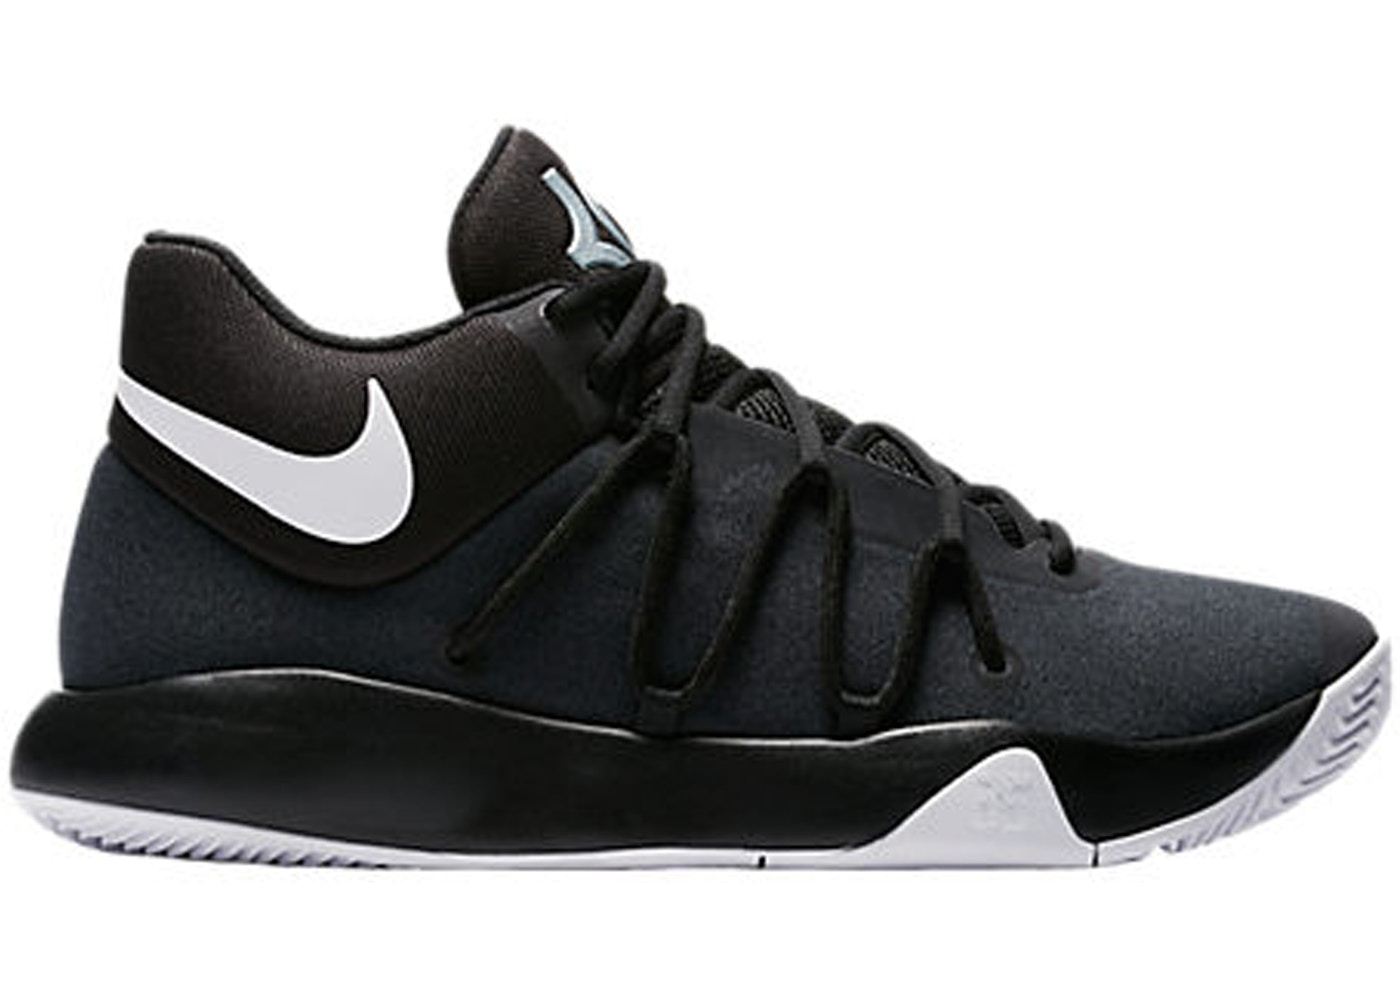 new product 1f122 42aab KD Trey 5 V Anthracite Black